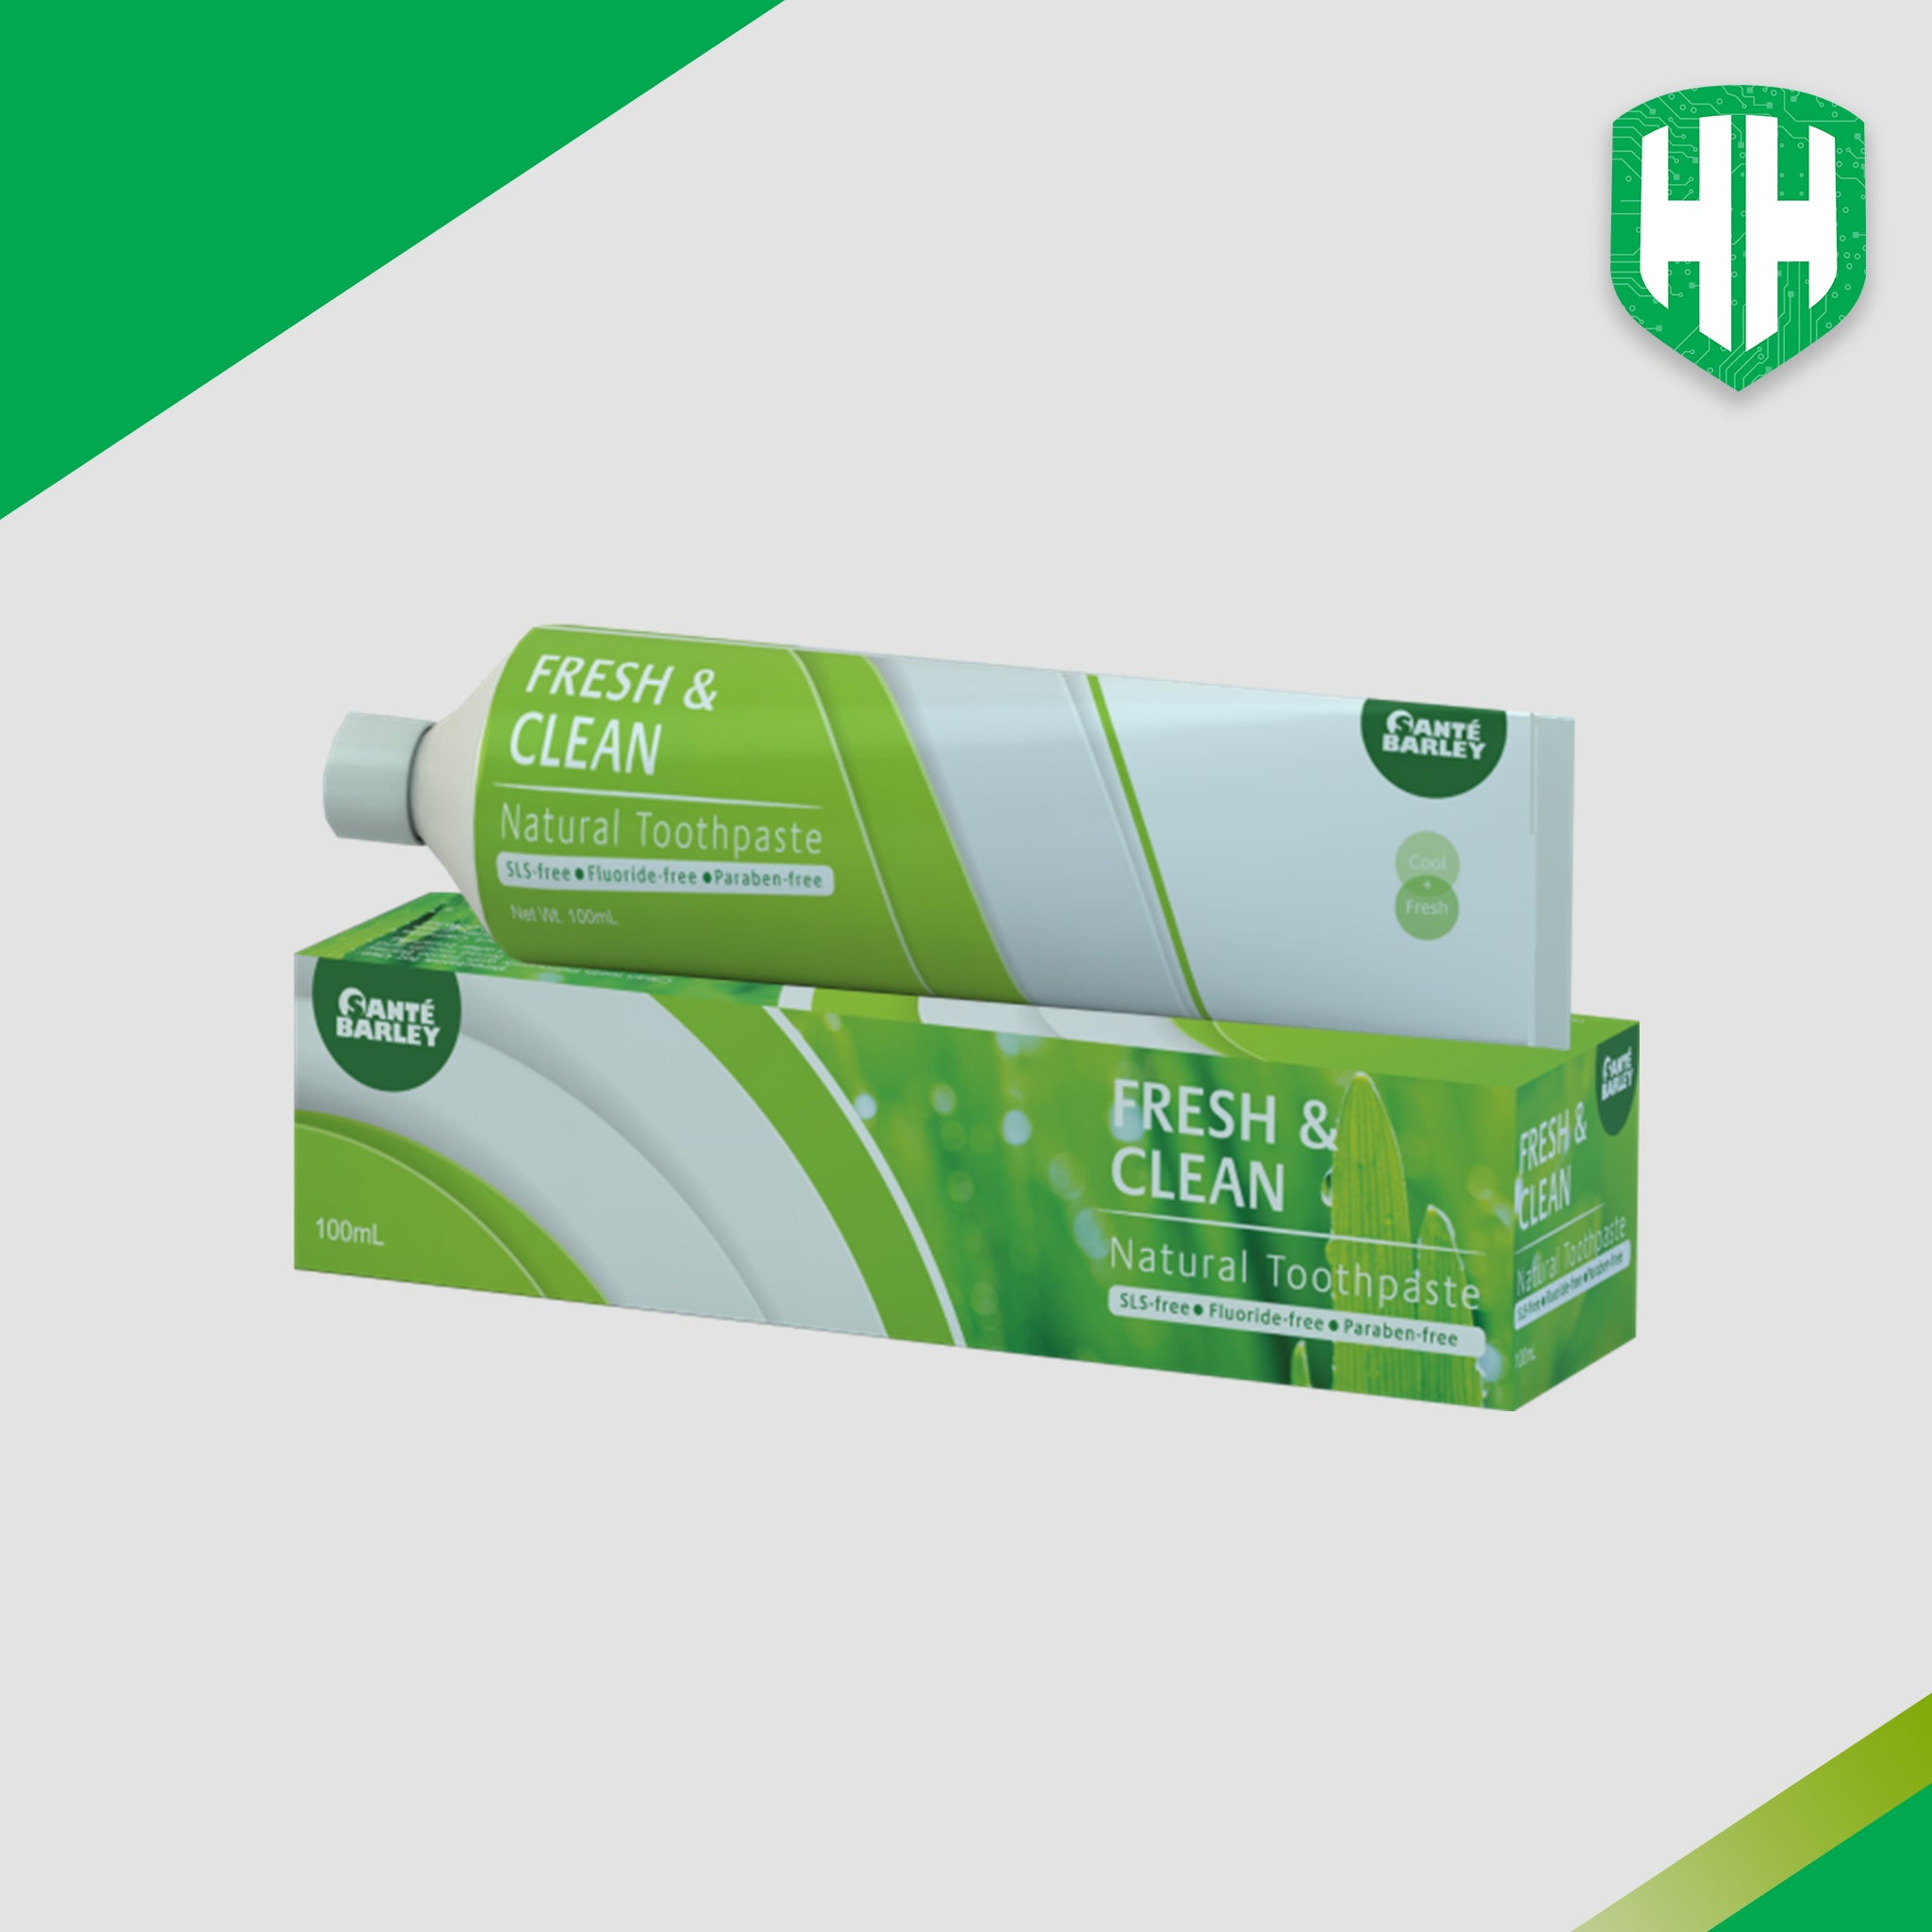 Santé Fresh & Clean Natural Toothpaste